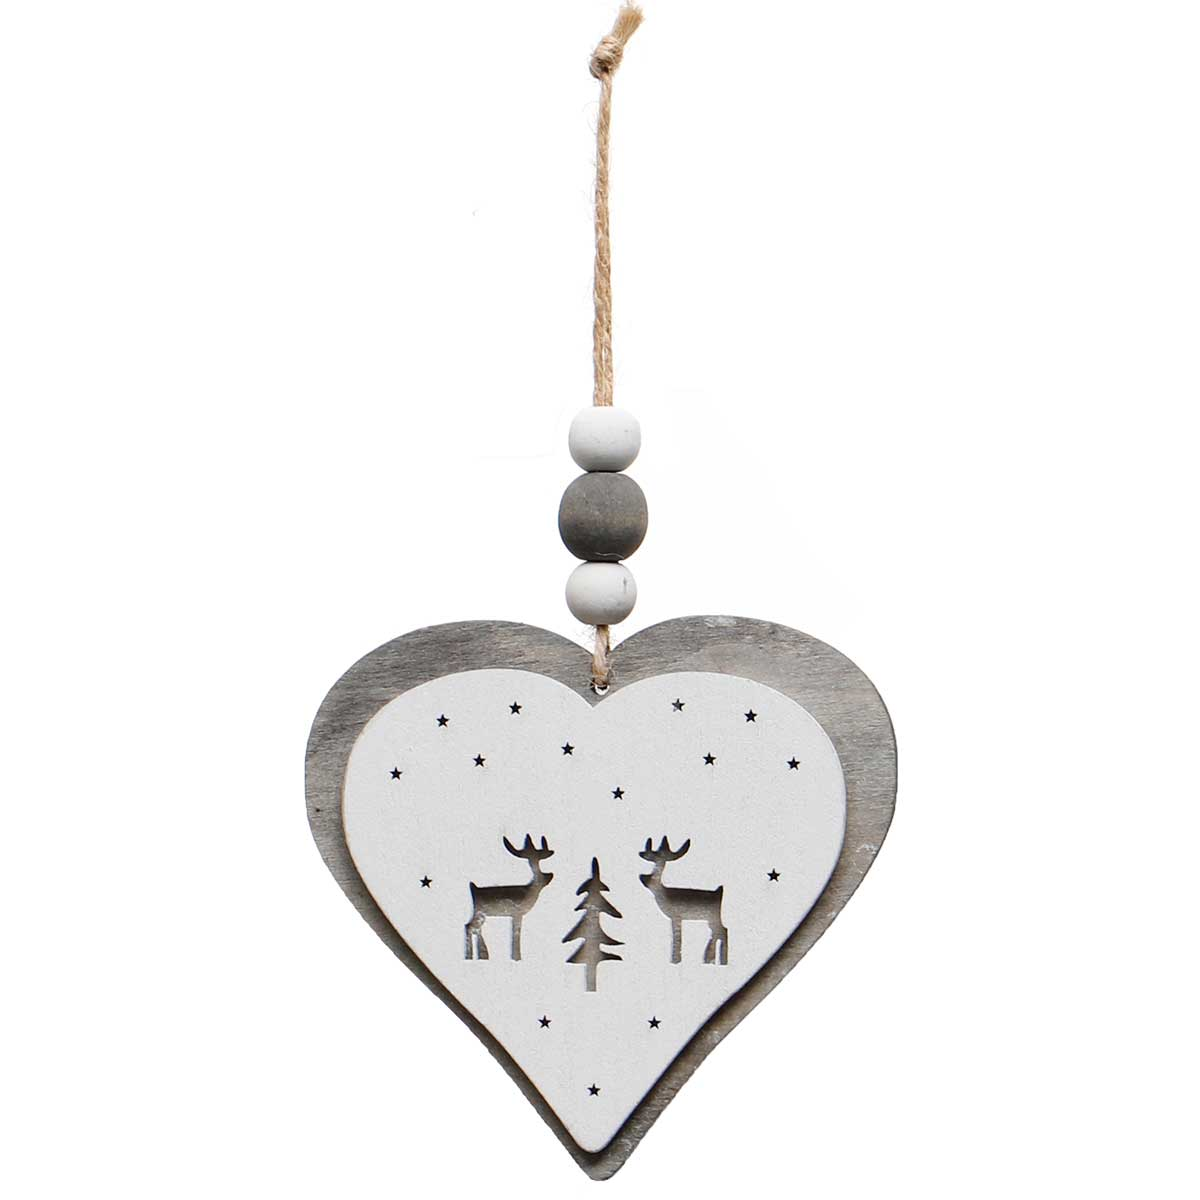 GREY/WHITE WOOD HEART ORNAMENT AMENT